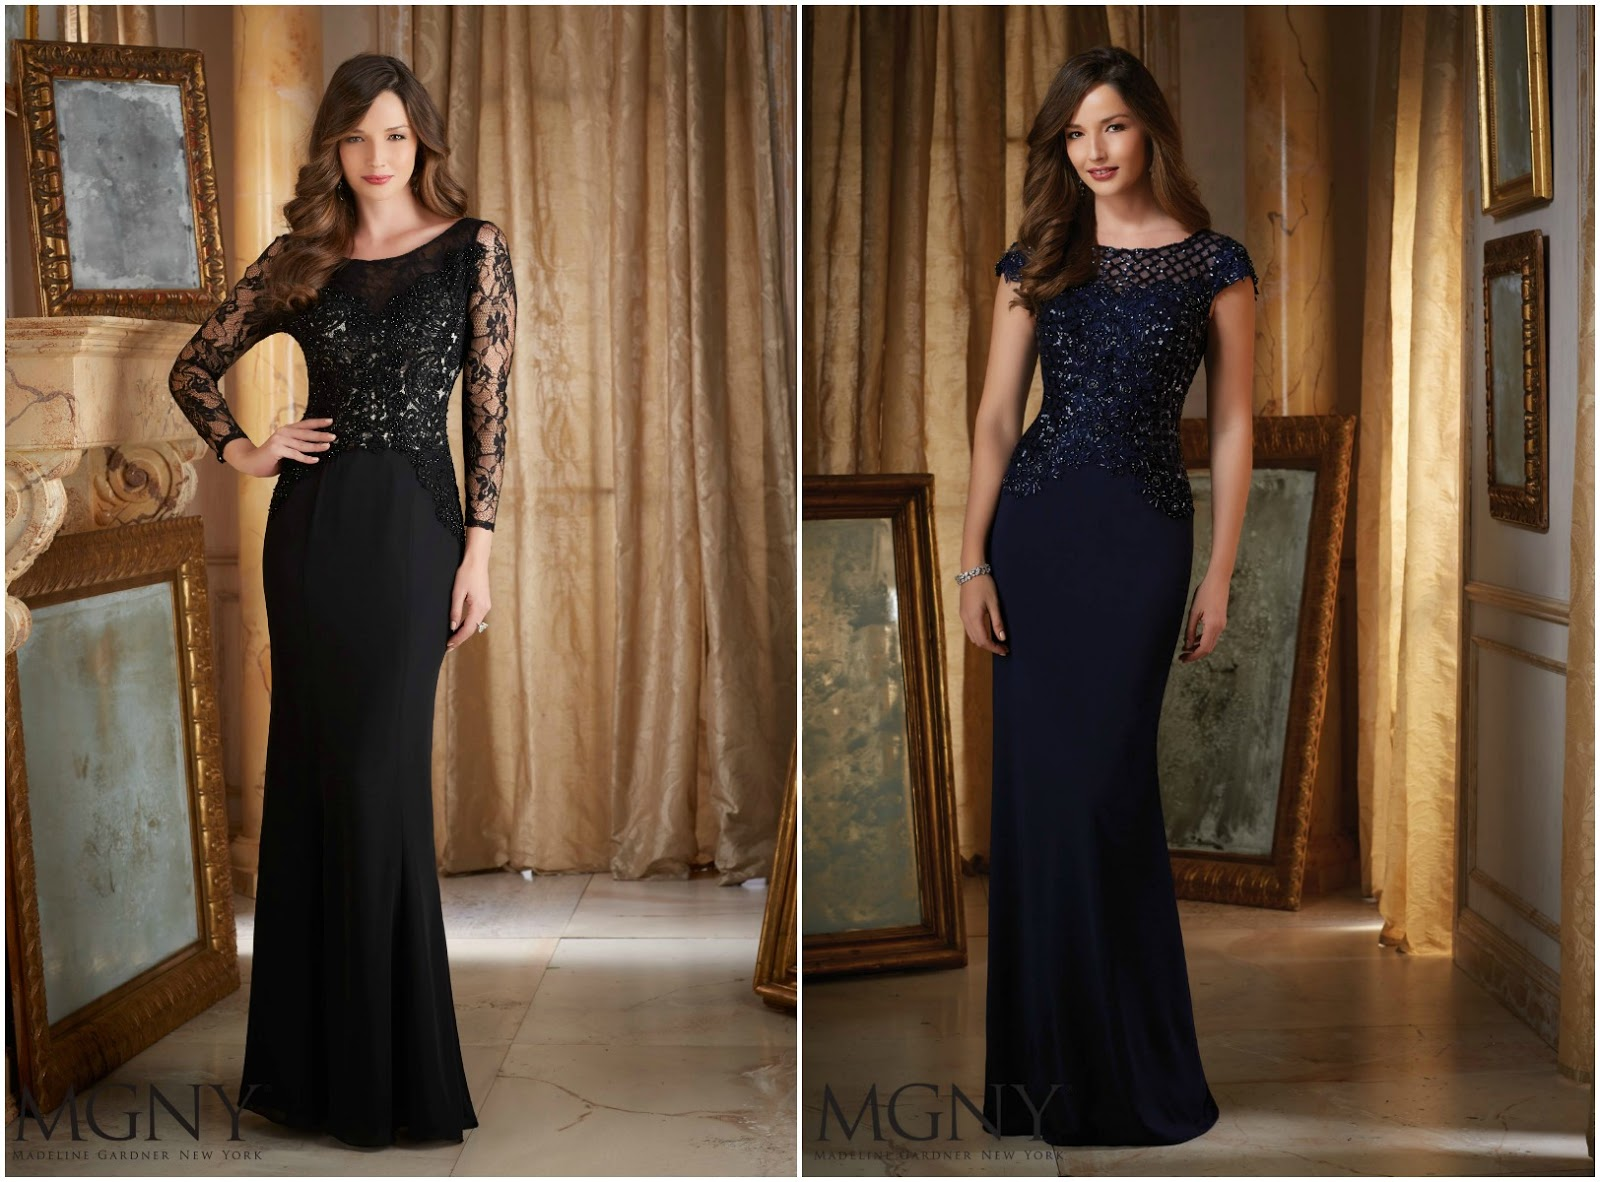 Brides of america online store wedding dress codes for Wedding guest dresses miami